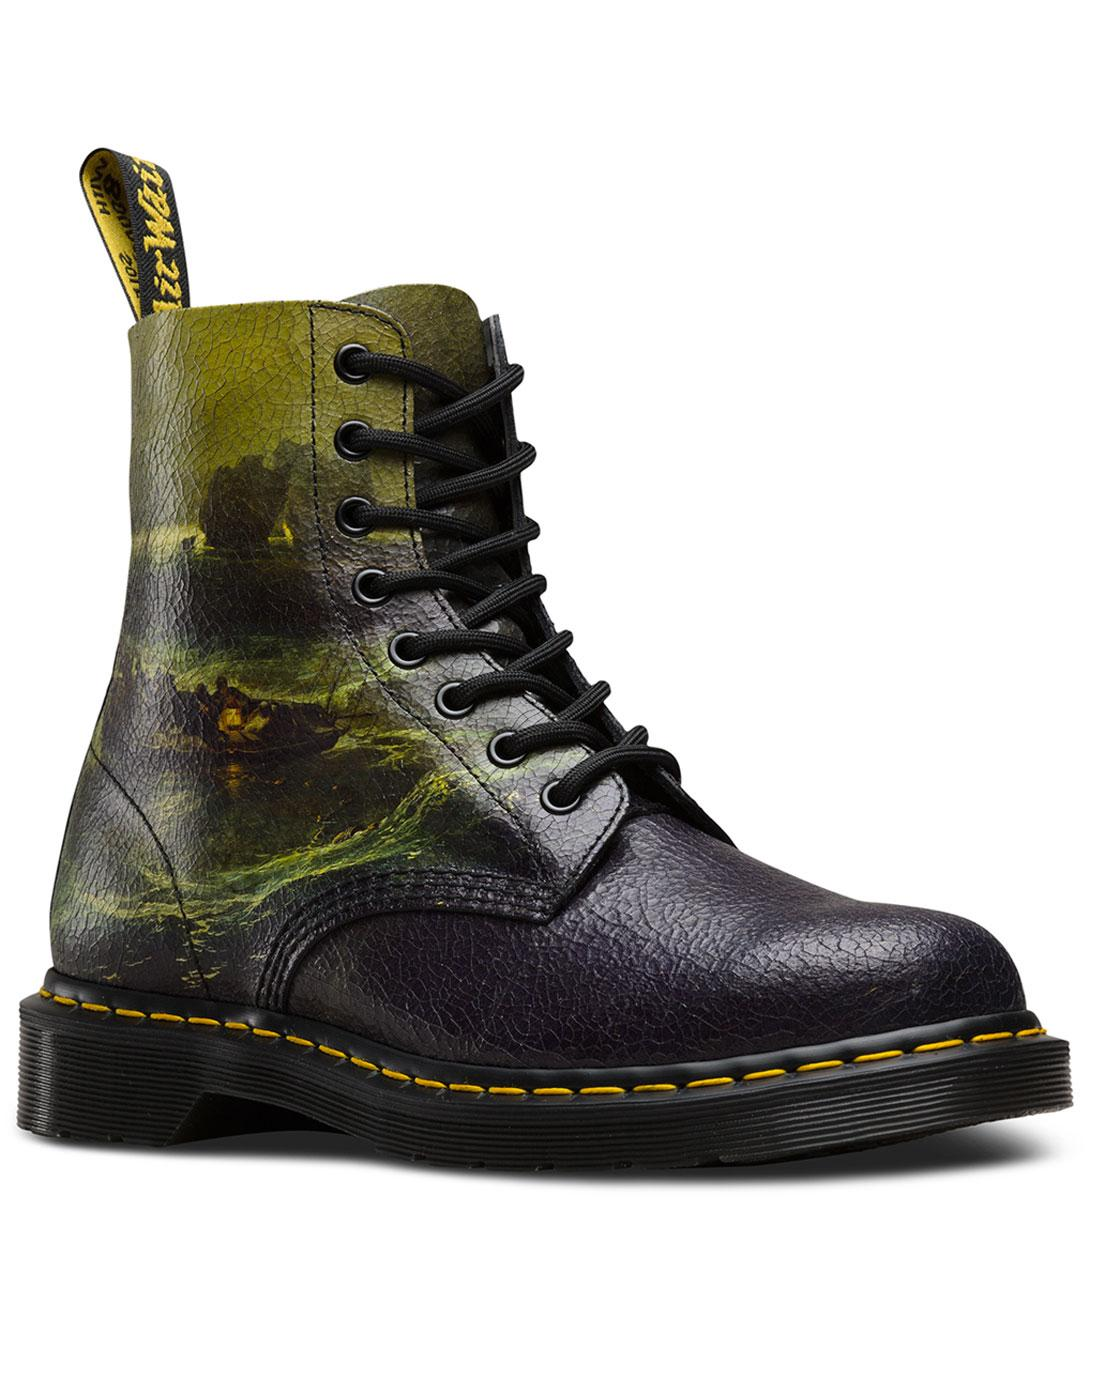 1460 Pascal Fisherman DR MARTENS JMW Turner Boots